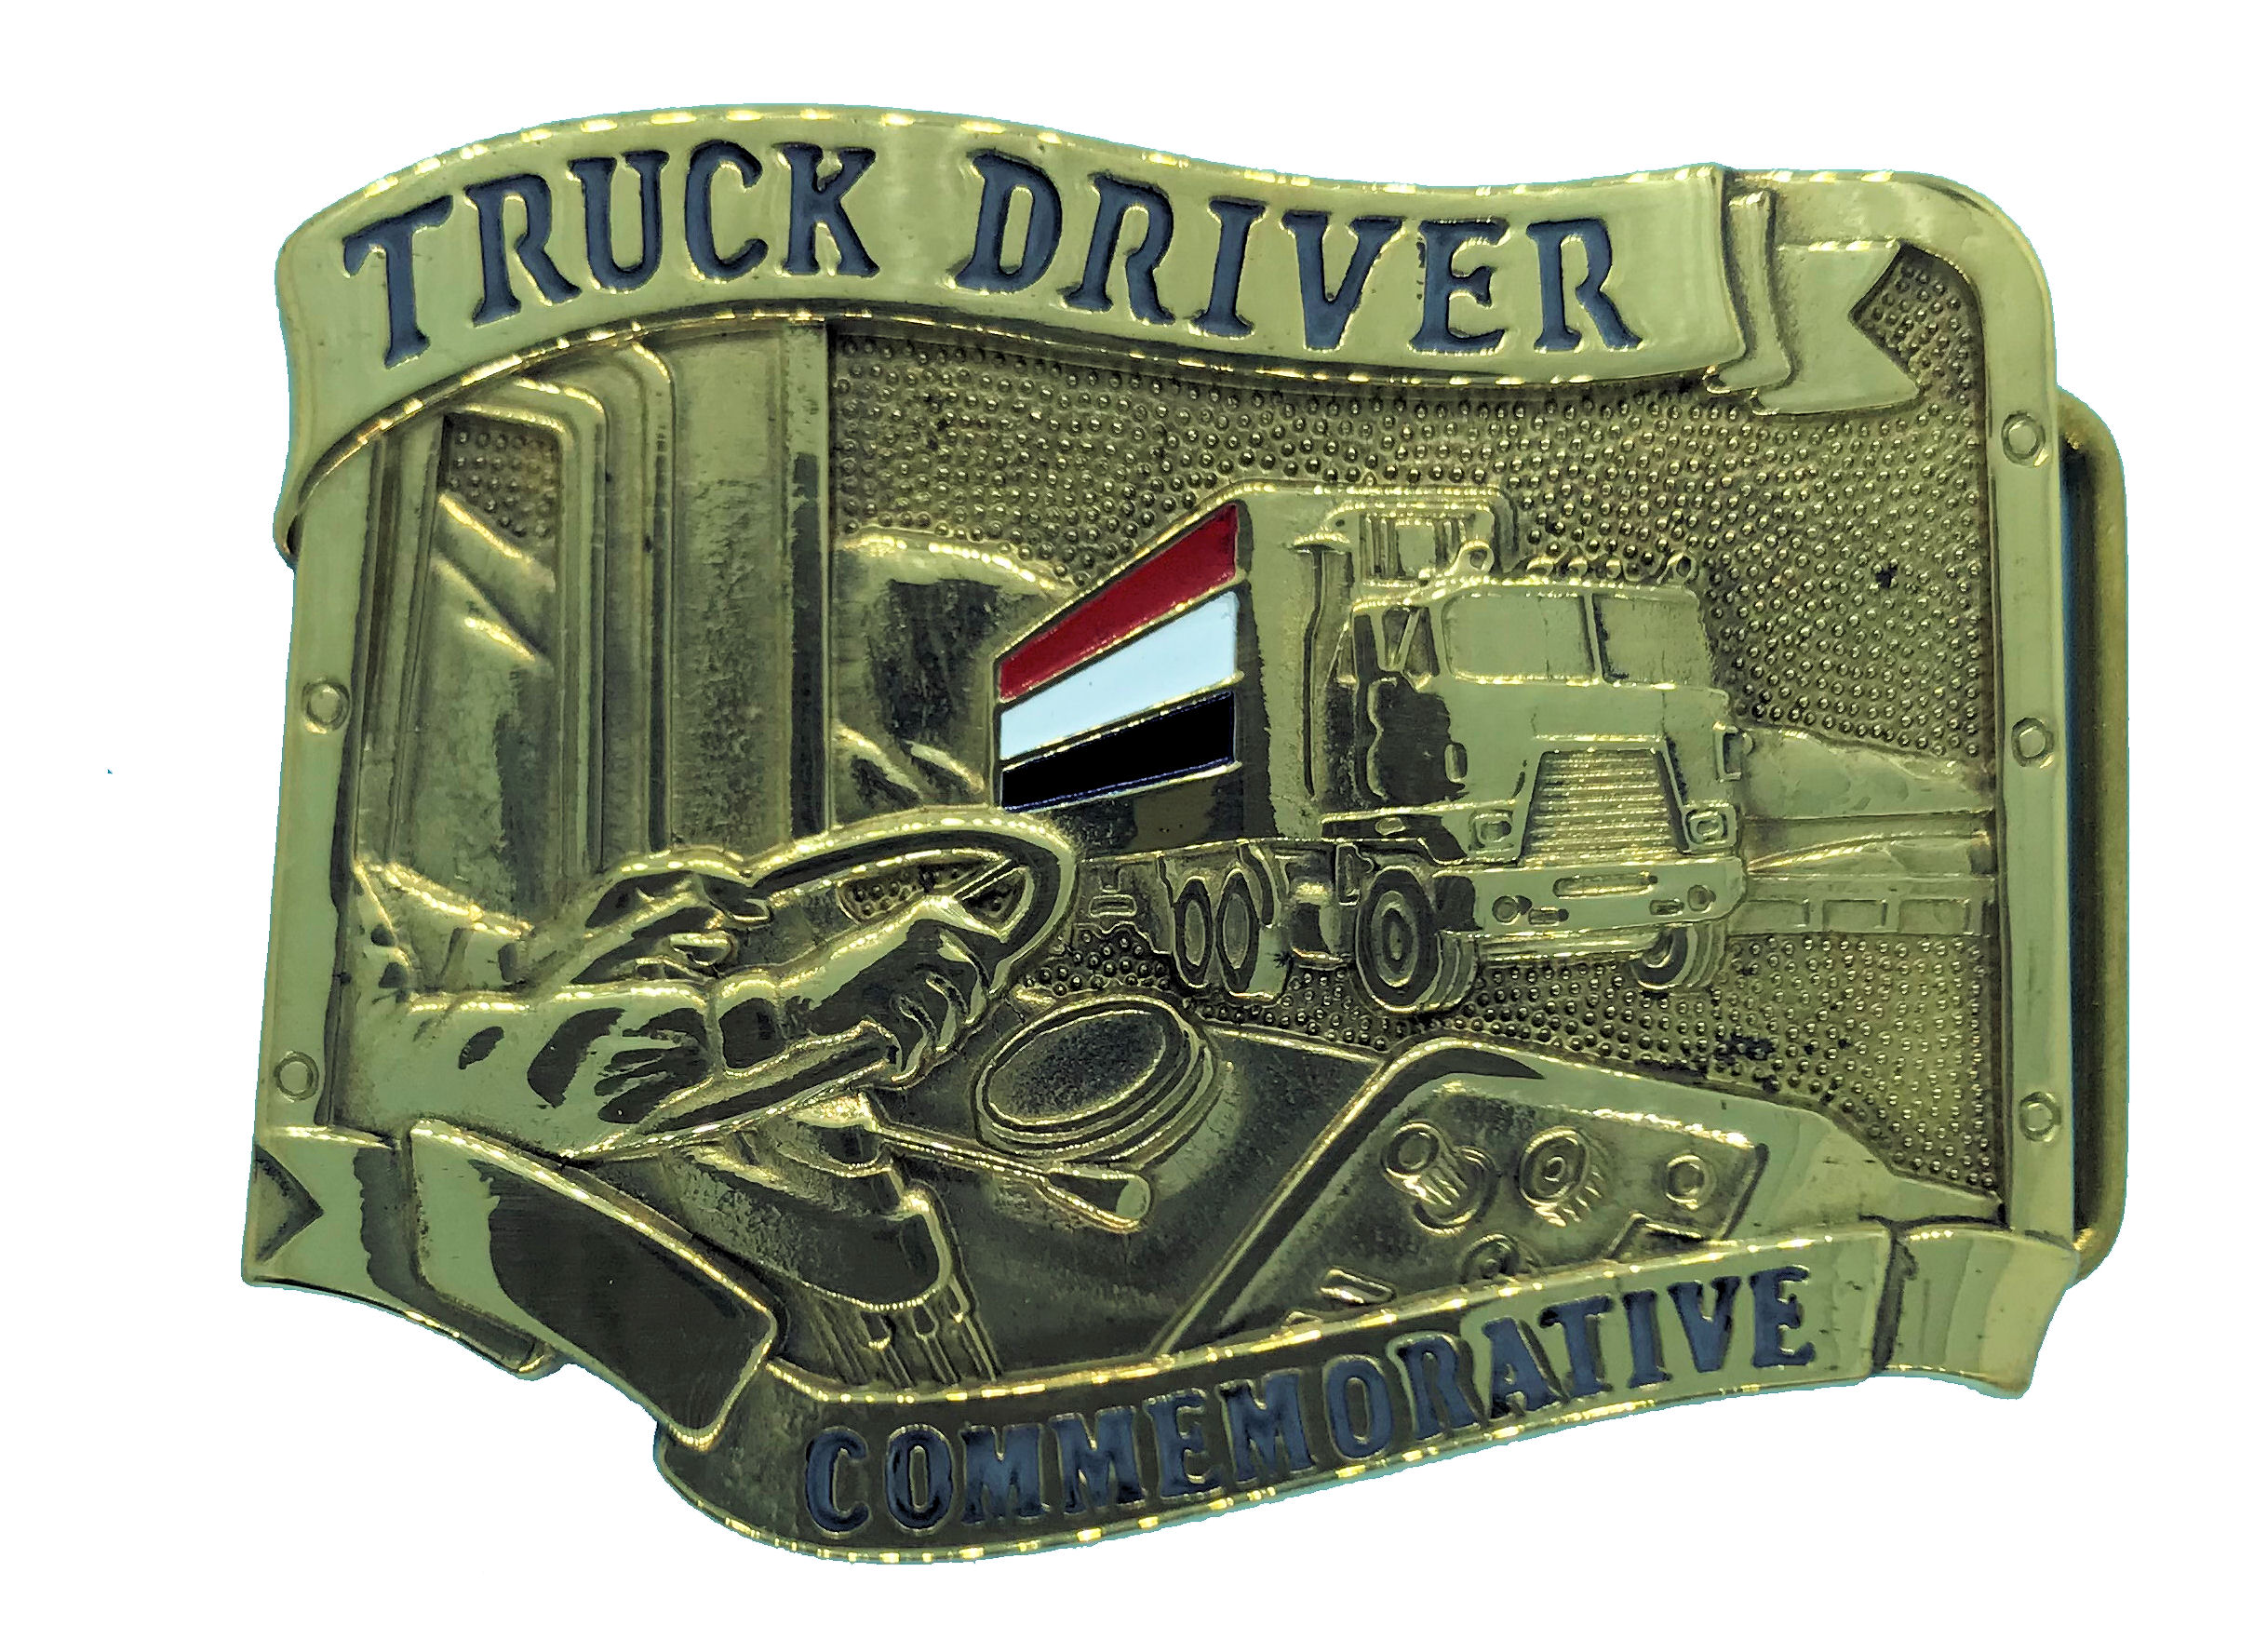 Commemmorative Truck Driver Brass Buckle